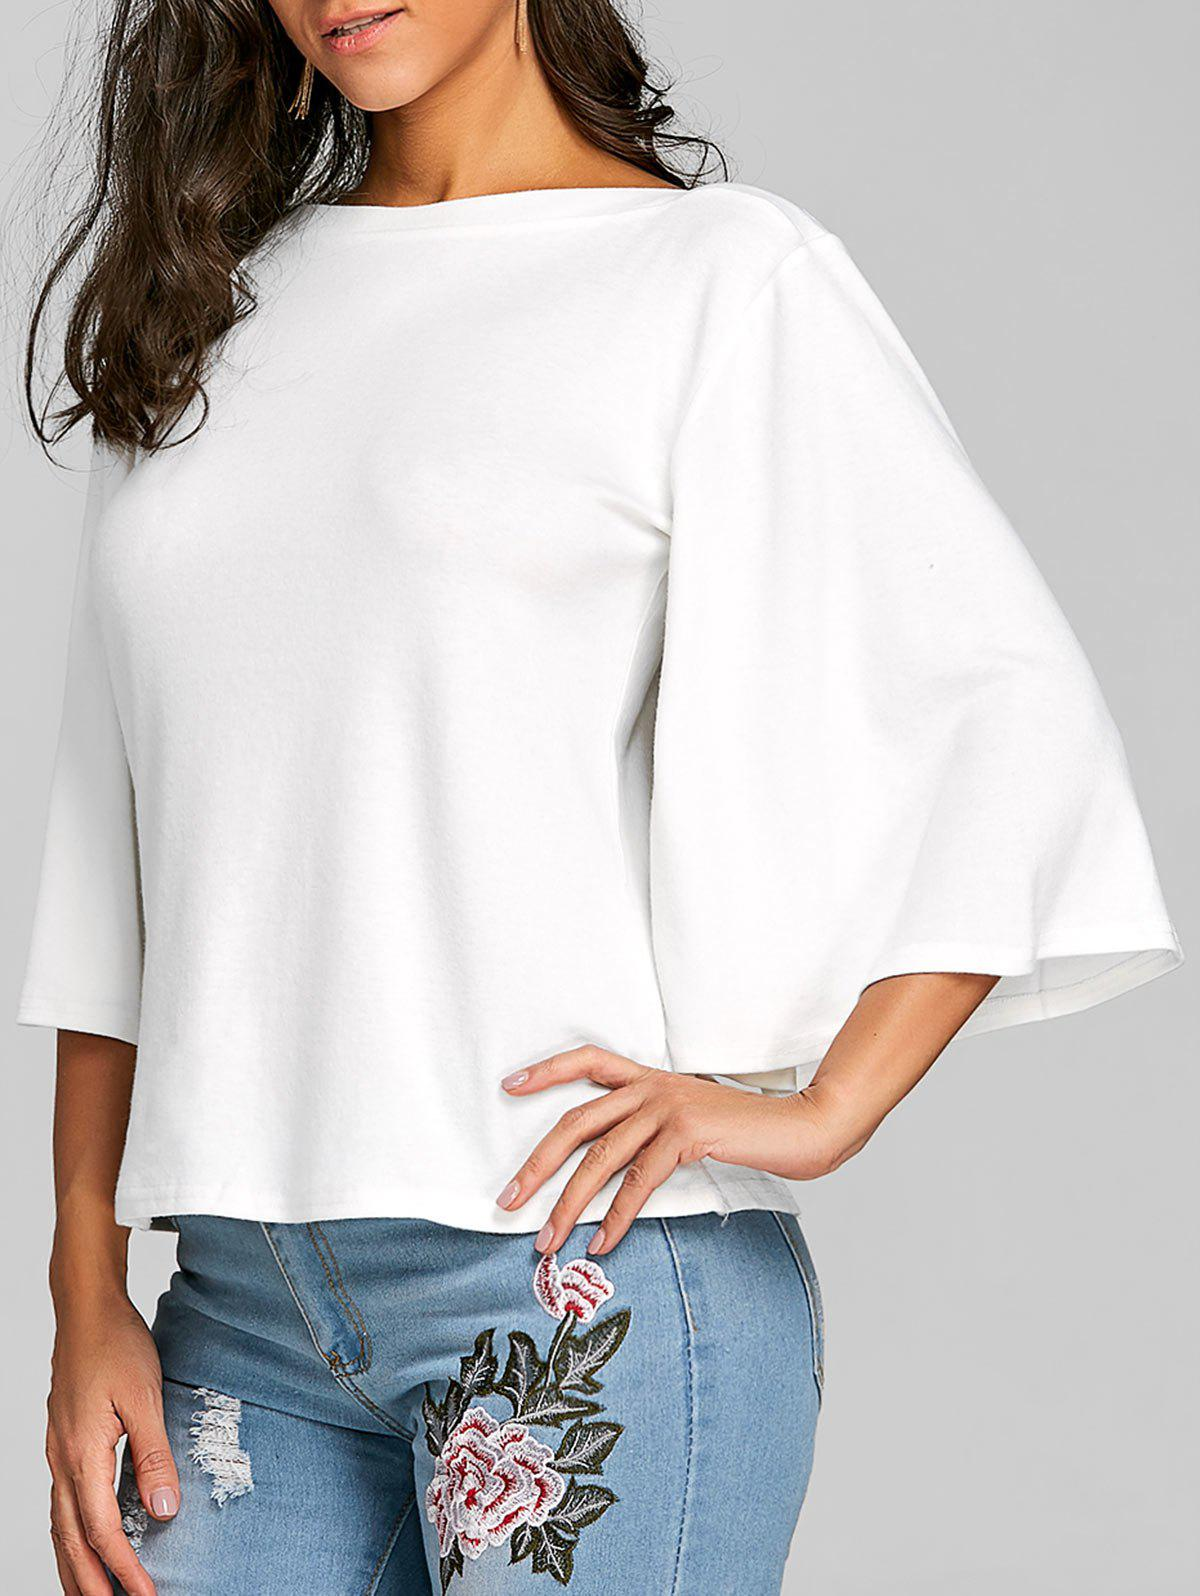 Flare Sleeve Tunic T-shirt - WHITE 2XL